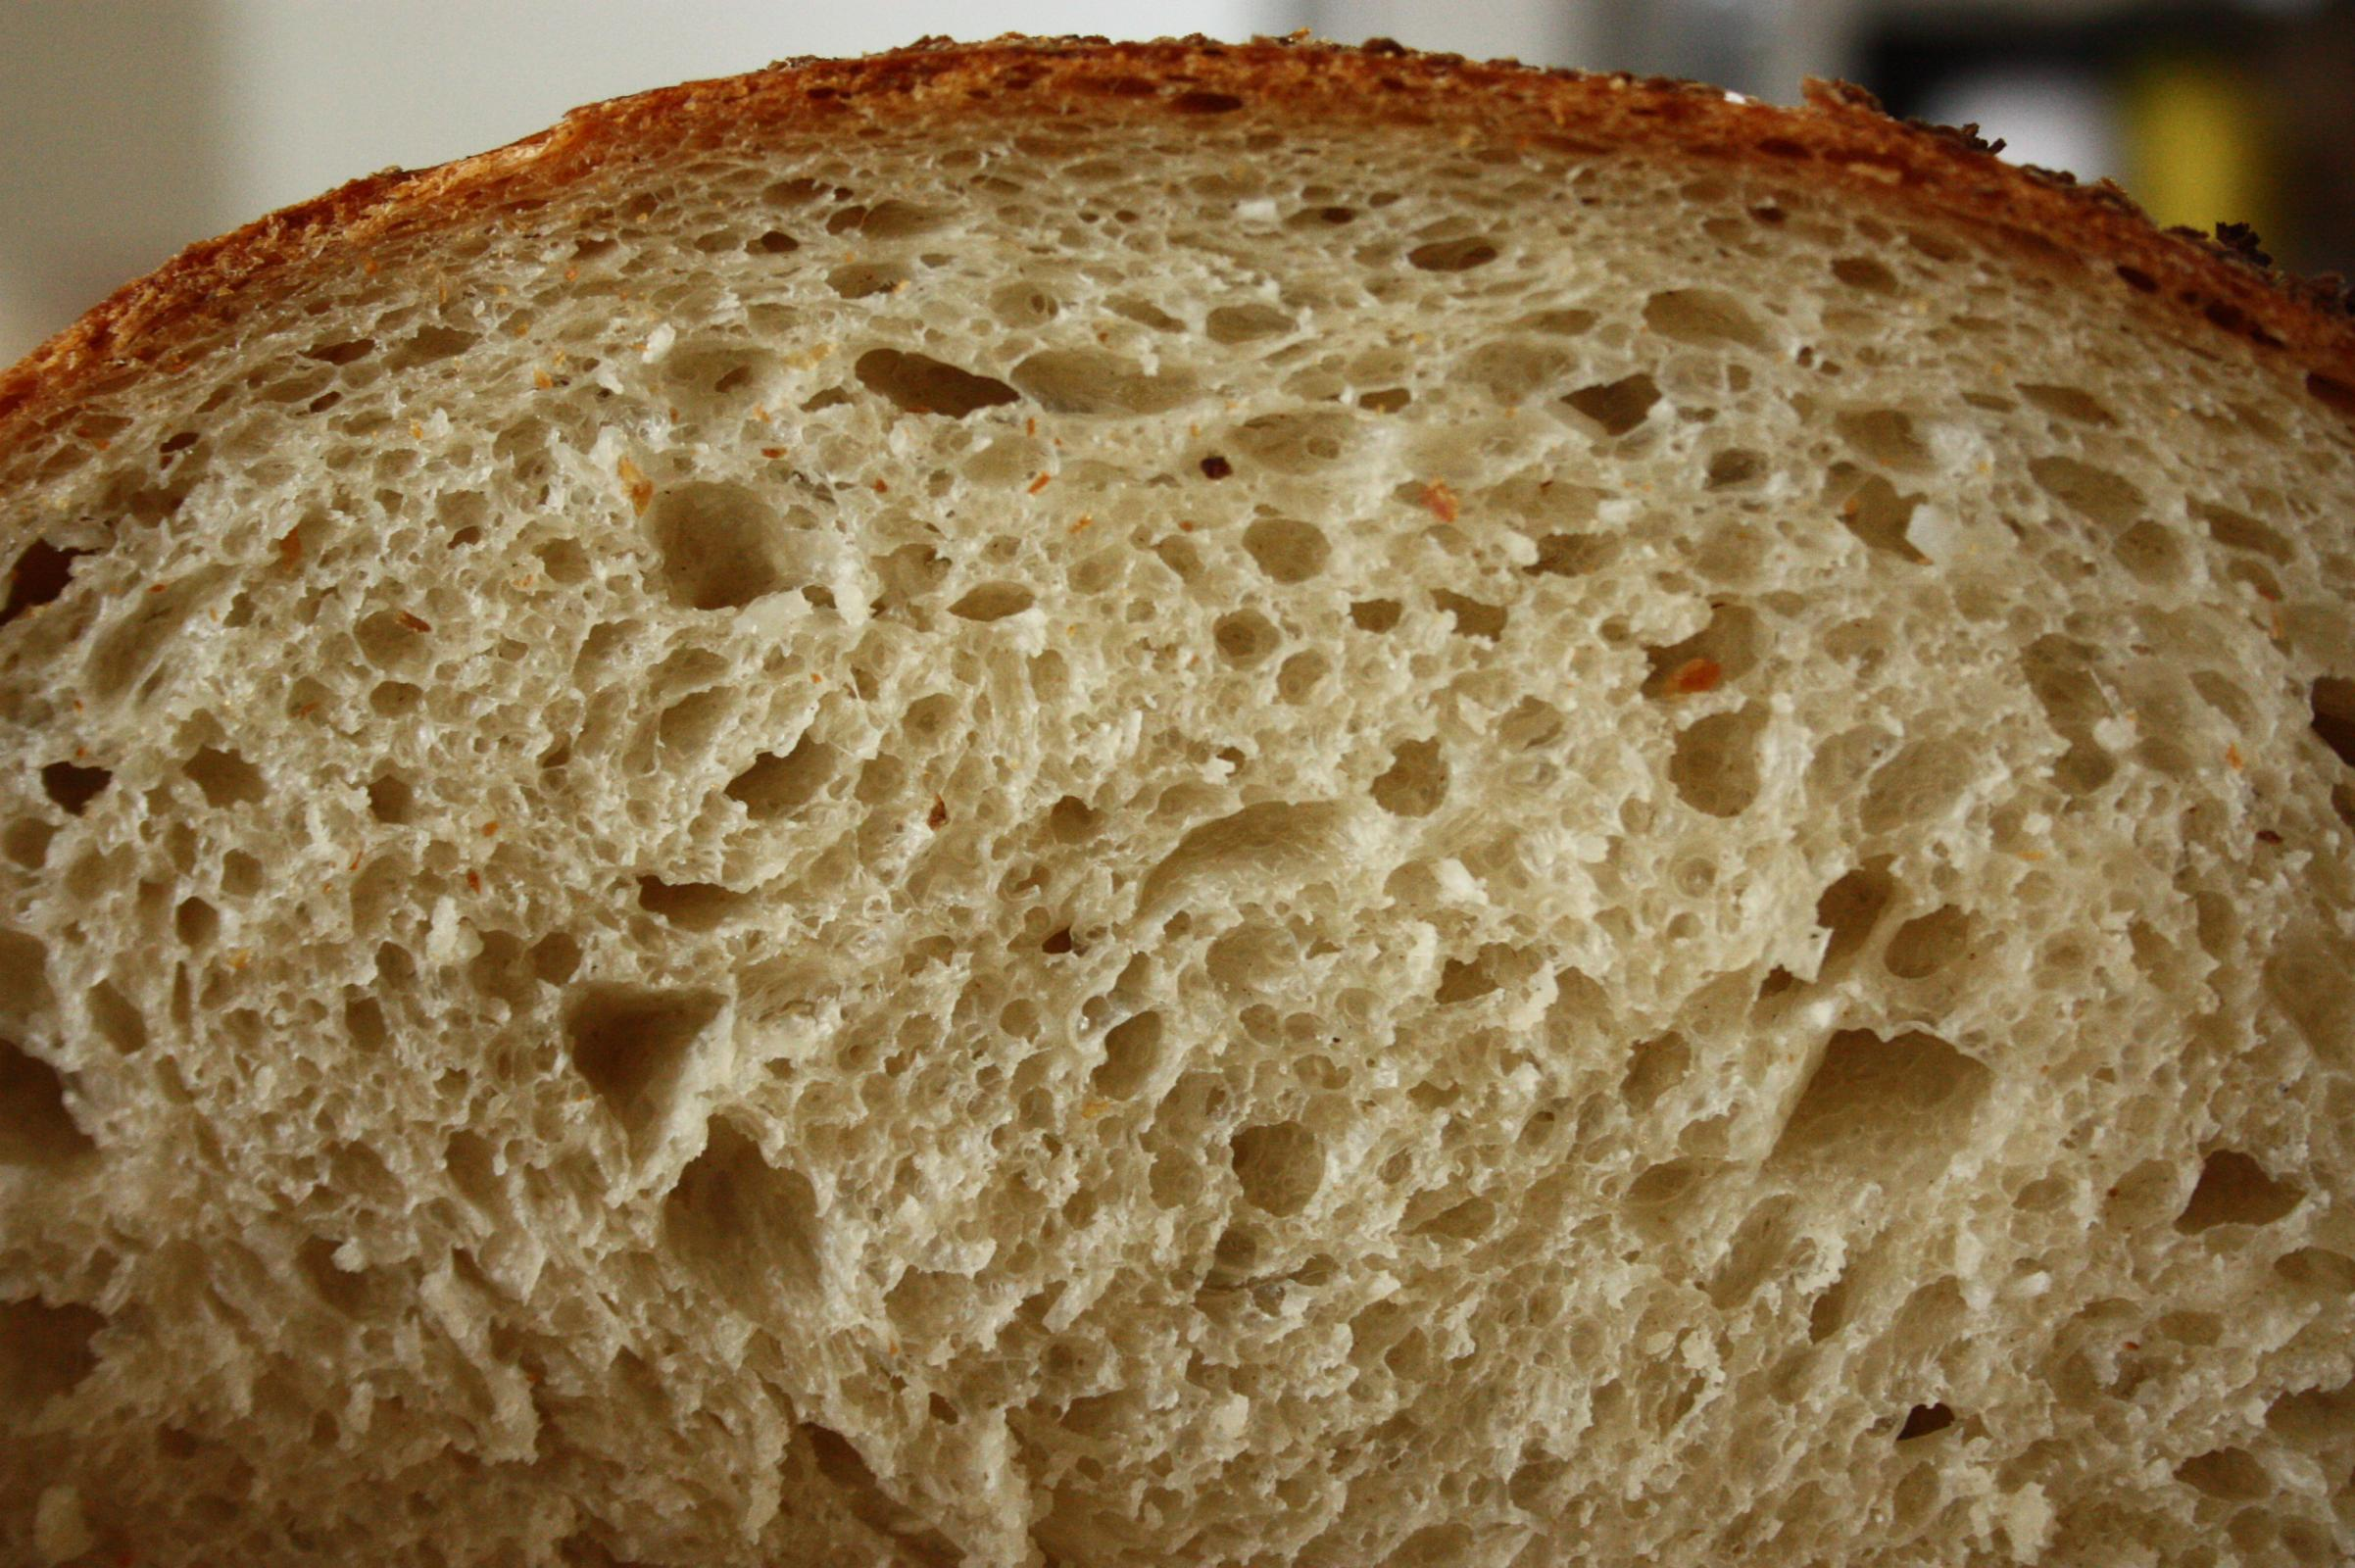 Crumb close up, natural light colour was a little more white than this